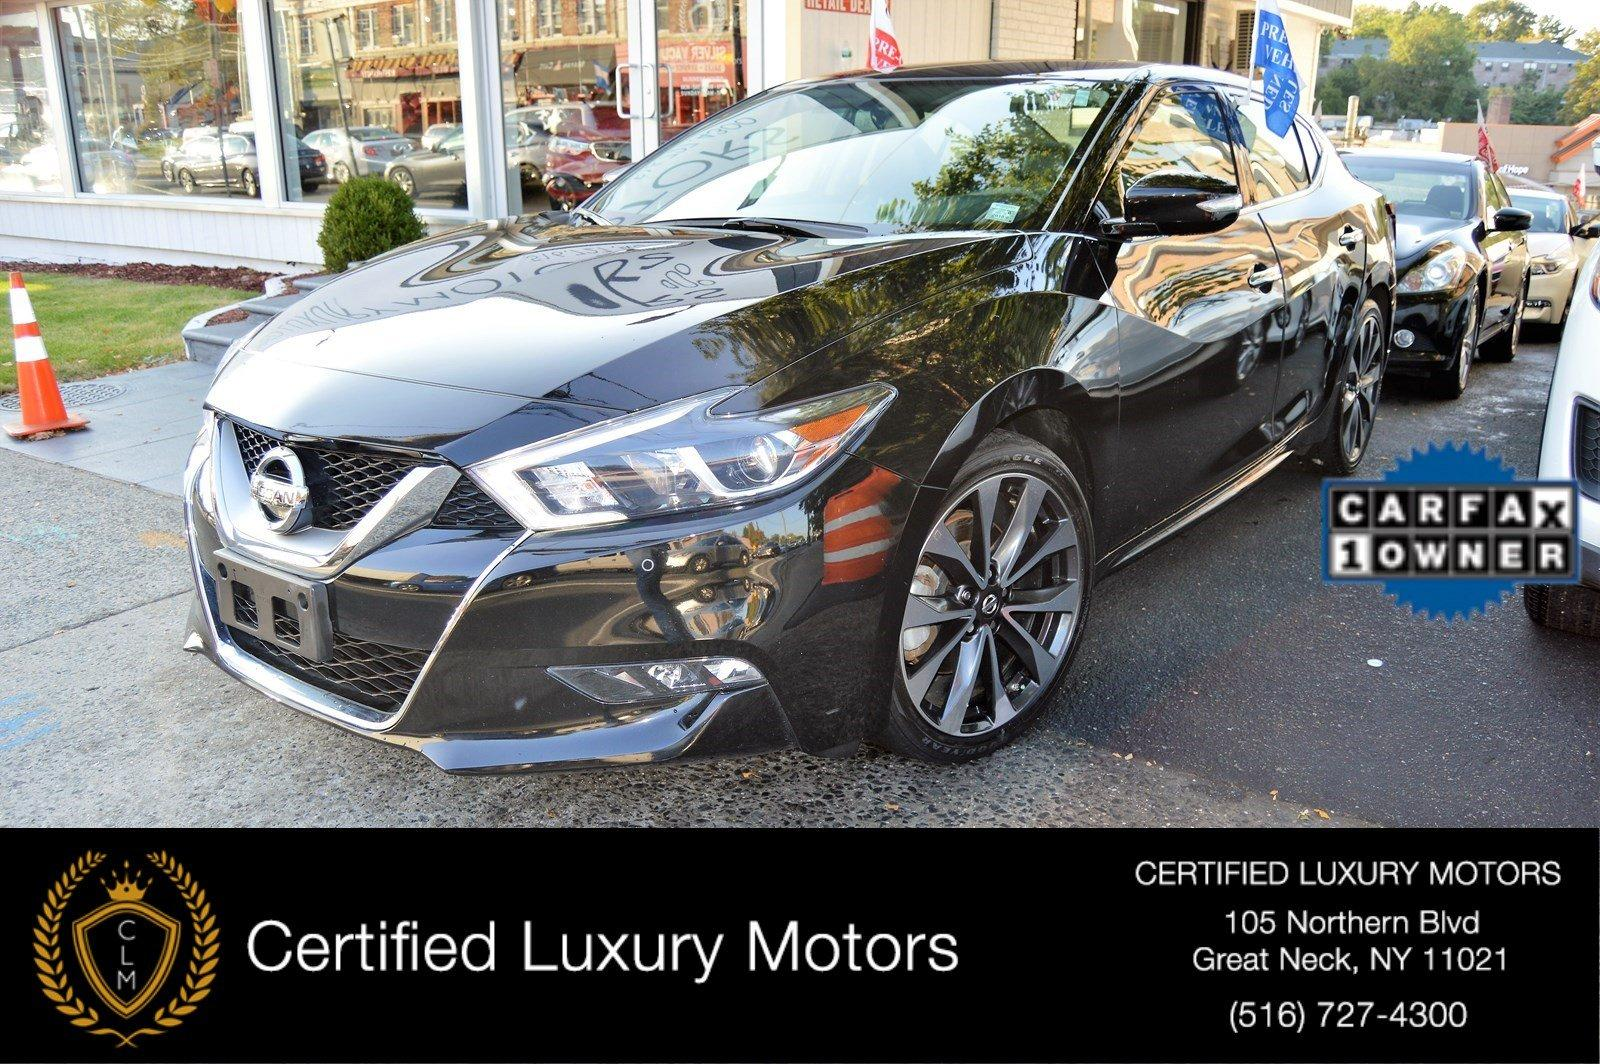 2016 nissan maxima 3 5 sr stock 1599 for sale near great for Certified luxury motors great neck ny